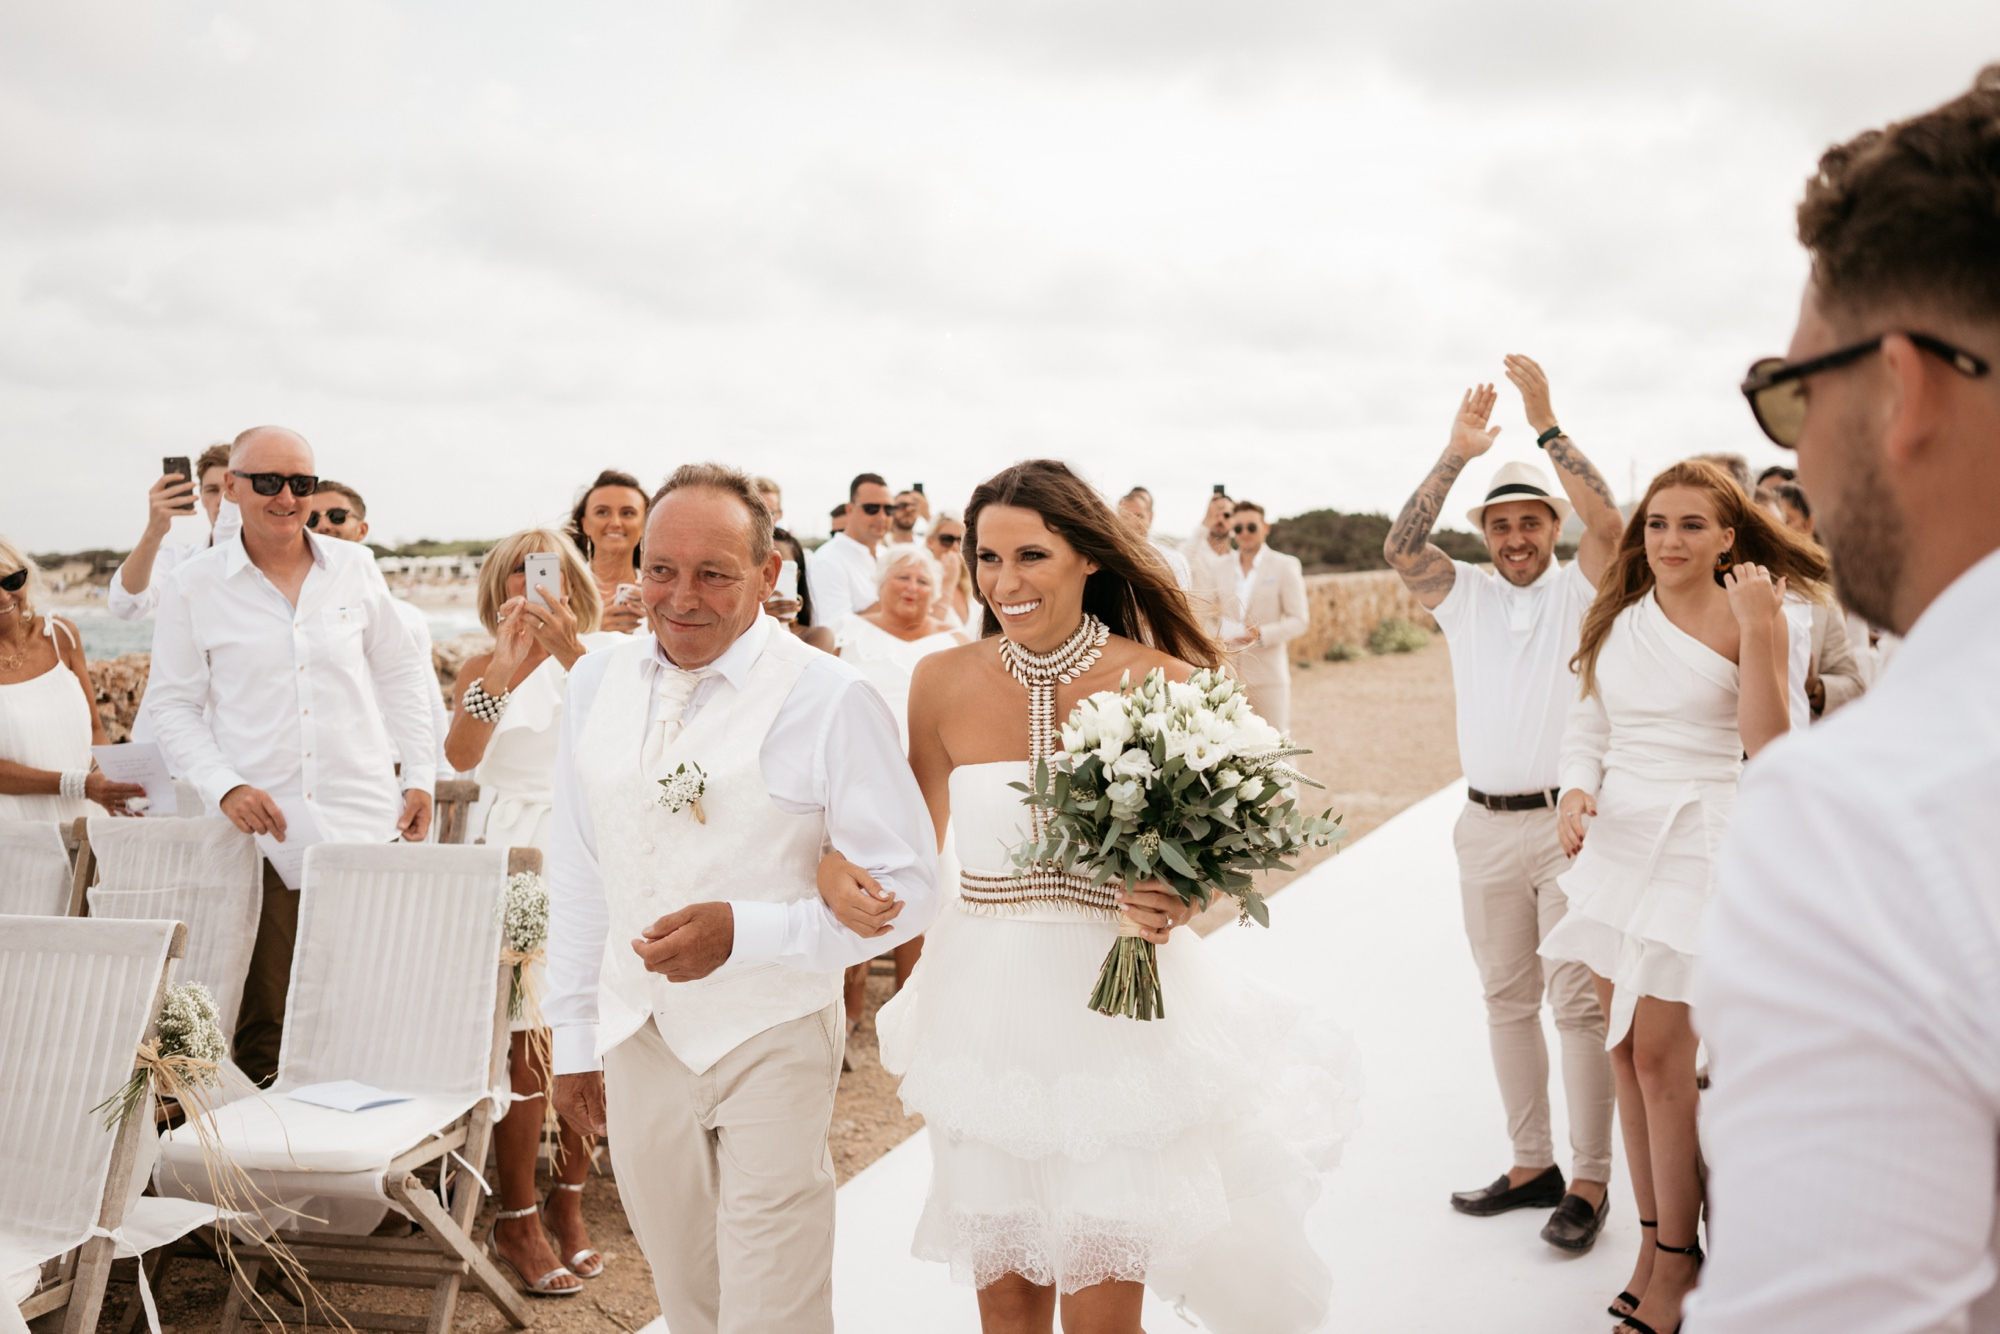 natural wedding photo destination la escollera ibiza 0053 1